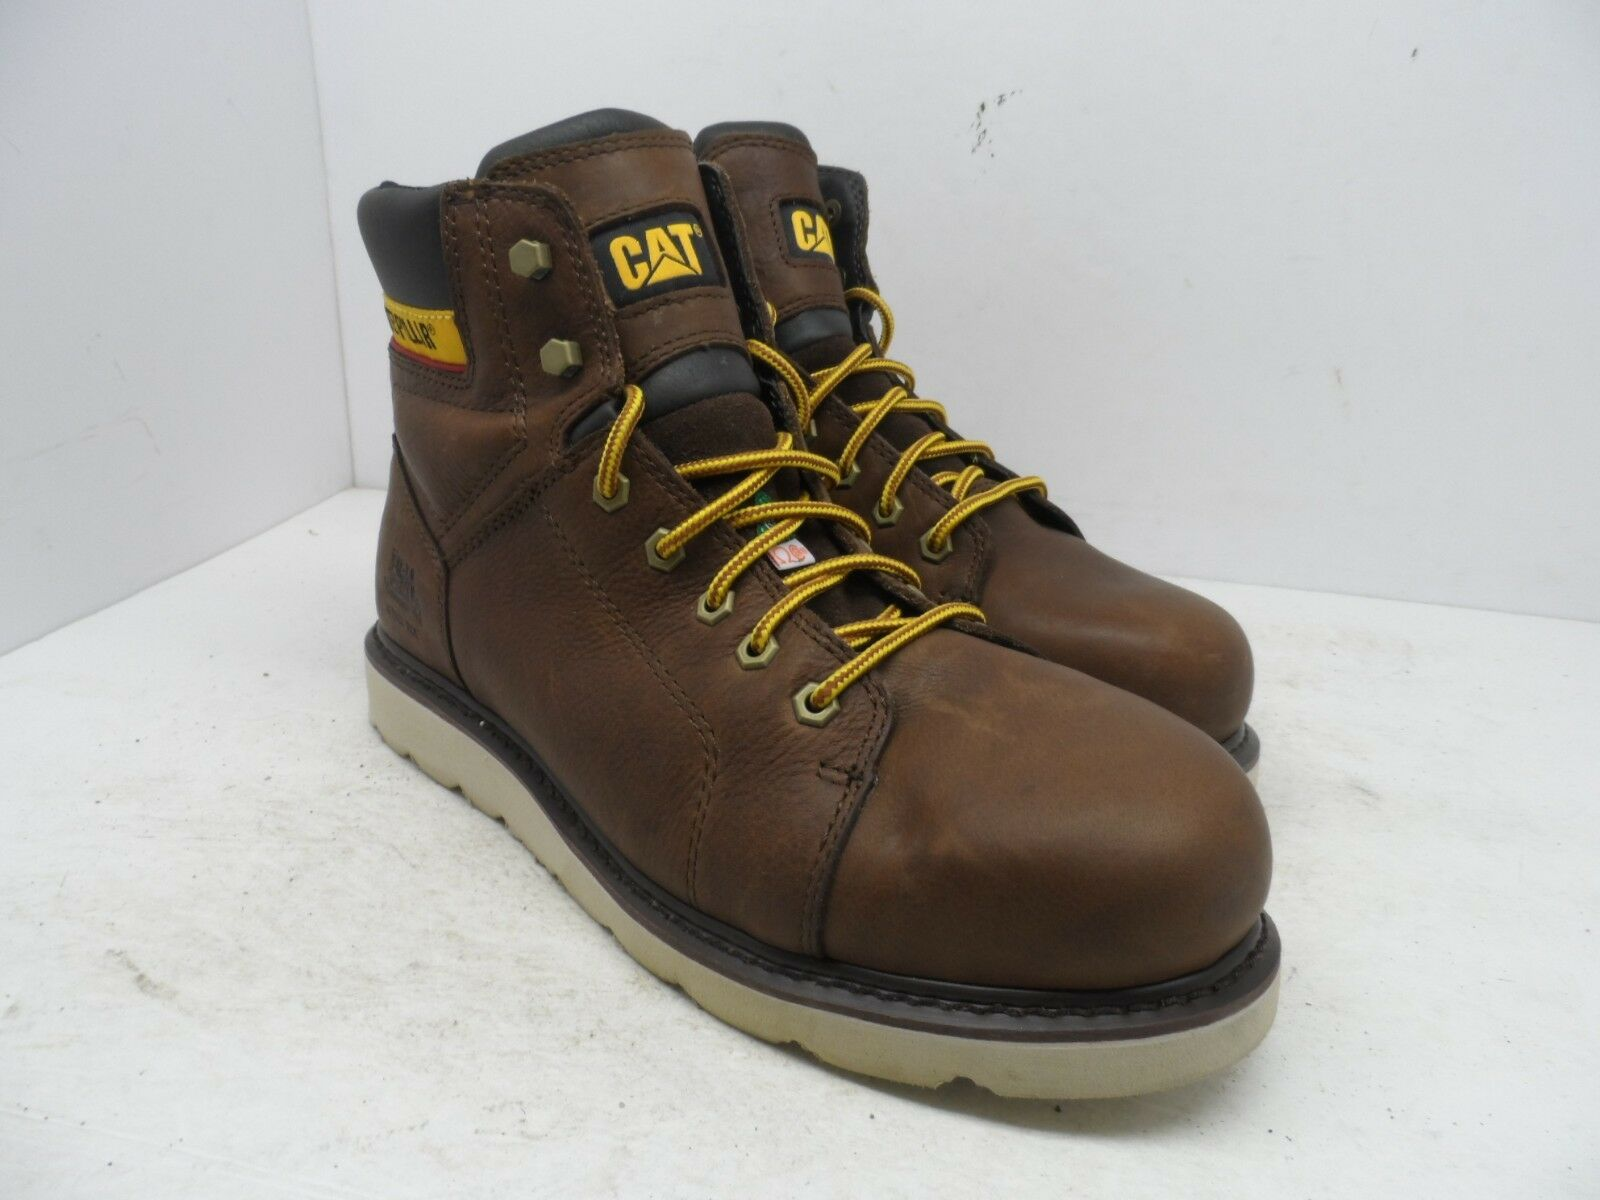 CAT Caterpillar Uomo JOURNEYMAN JOURNEYMAN JOURNEYMAN 6  WATERPROOF TX CSA STEEL TOE WORK avvio 10W 6f4626